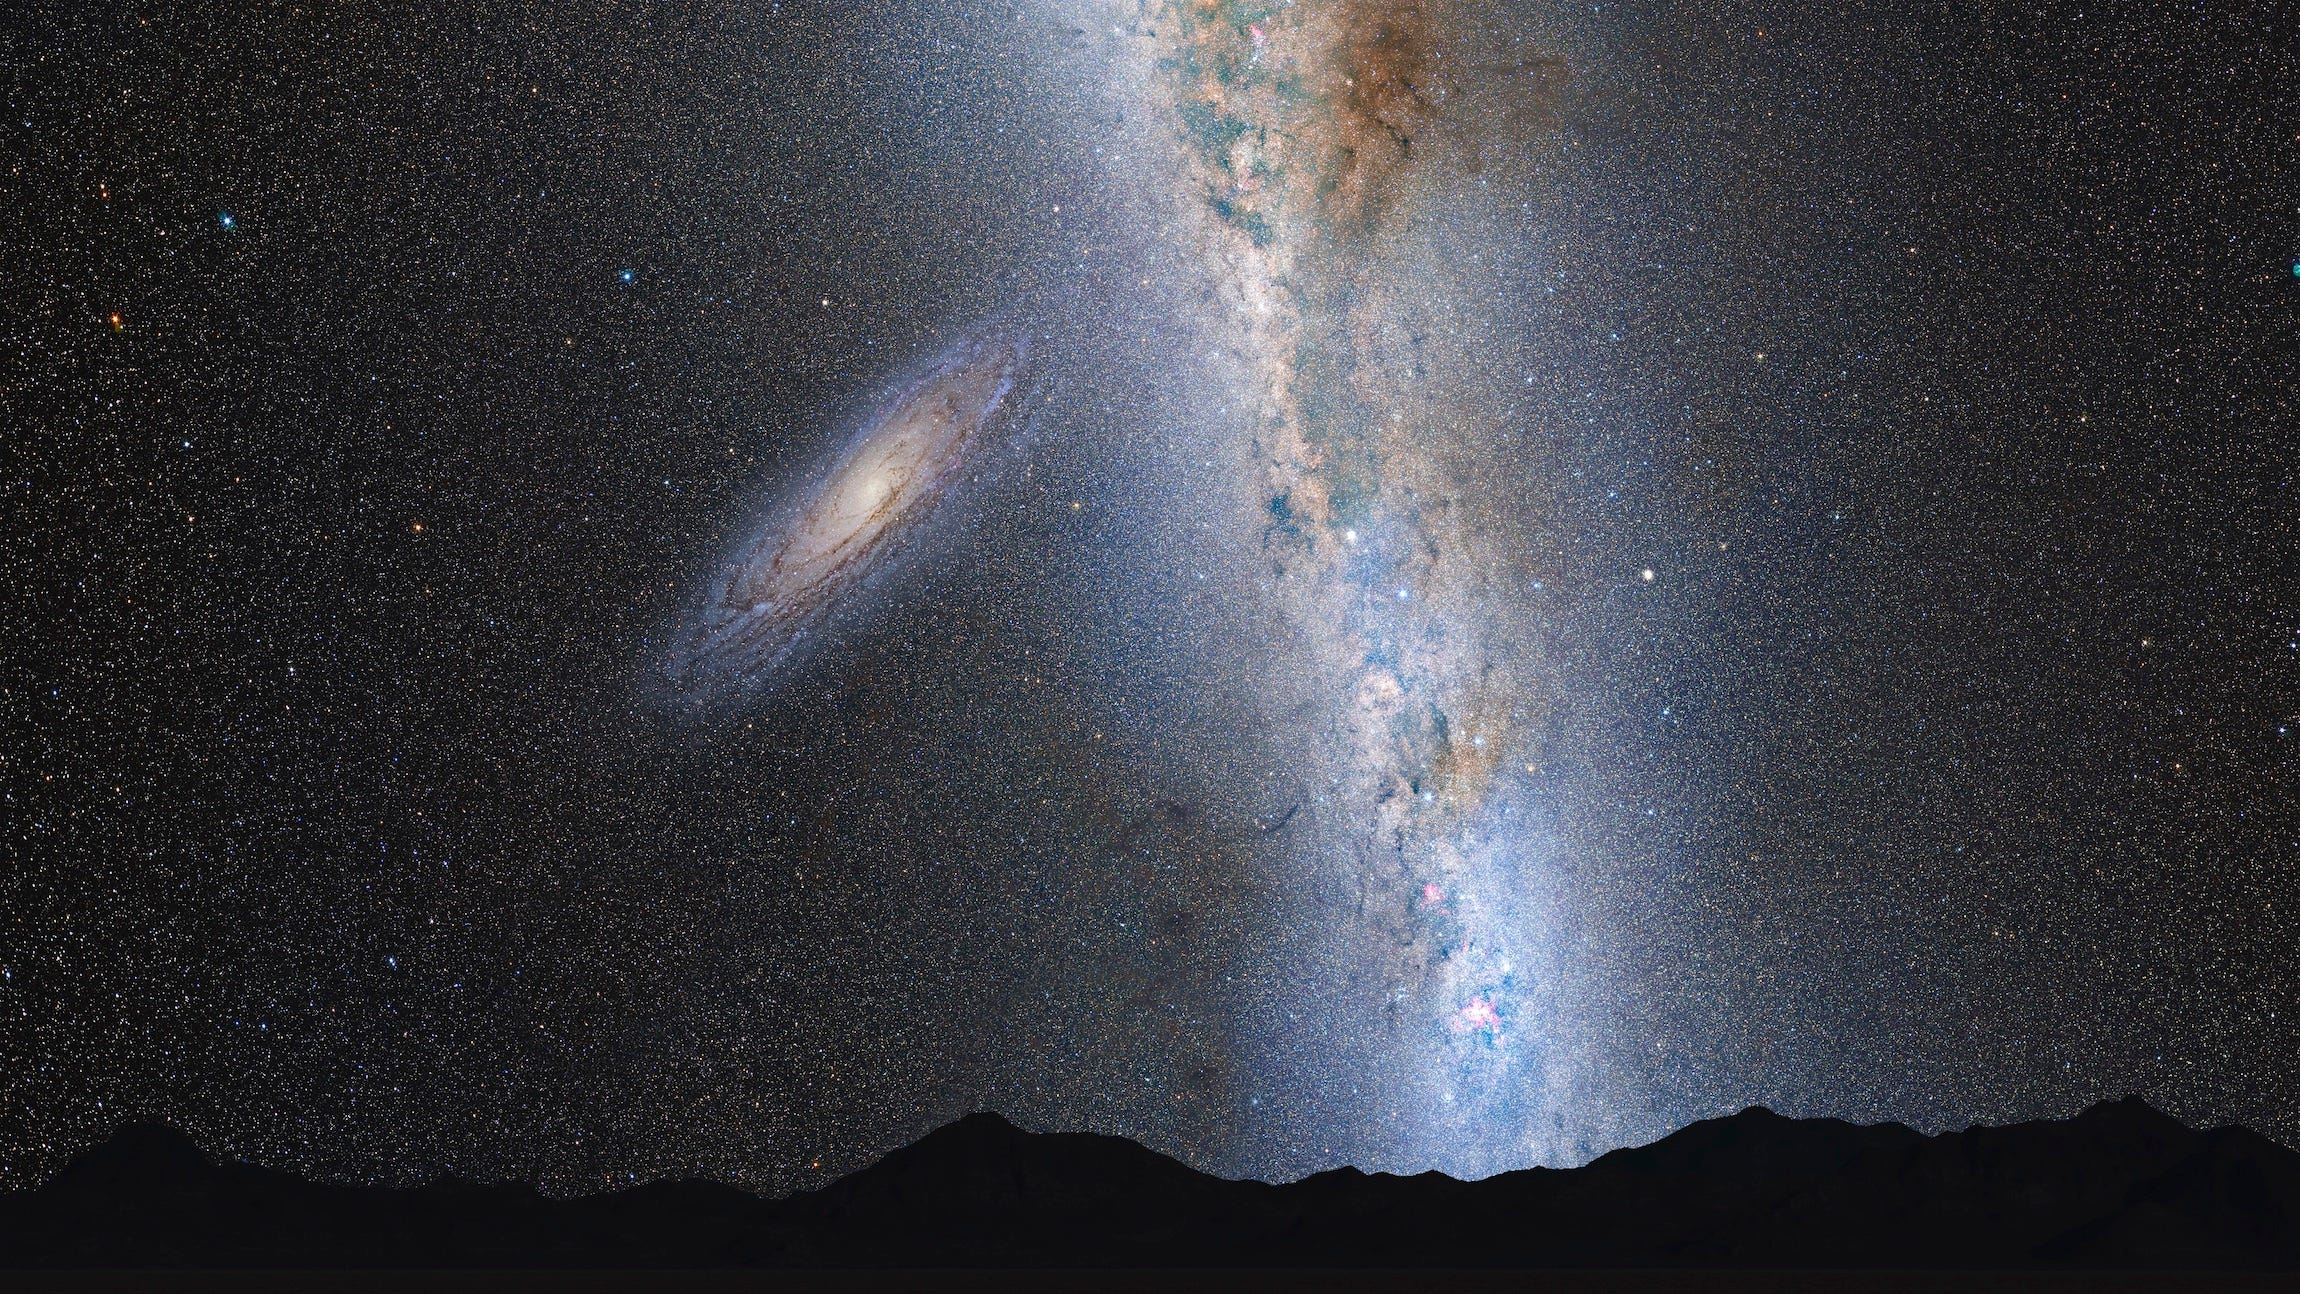 Our Galaxy will collide with the Andromeda Galaxy